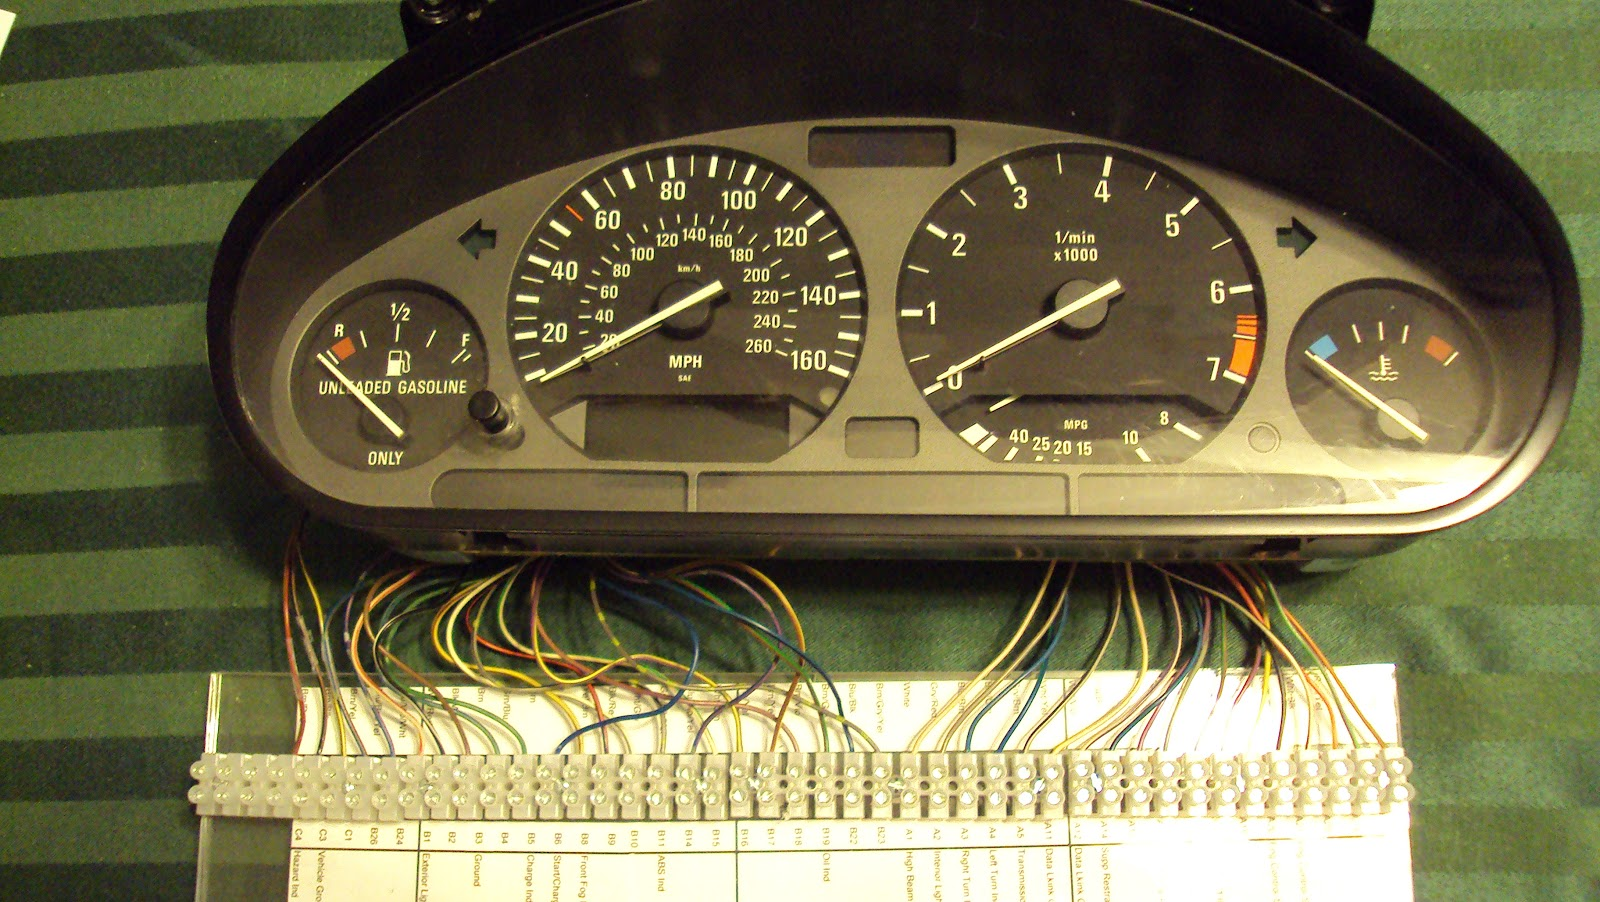 william s ev bimmer 325i 1992 bmw 325i instrument cluster 1 0 rh evbimmer325i blogspot com 2004 Suburban Wiring Diagram bmw e36 speedo wiring diagram